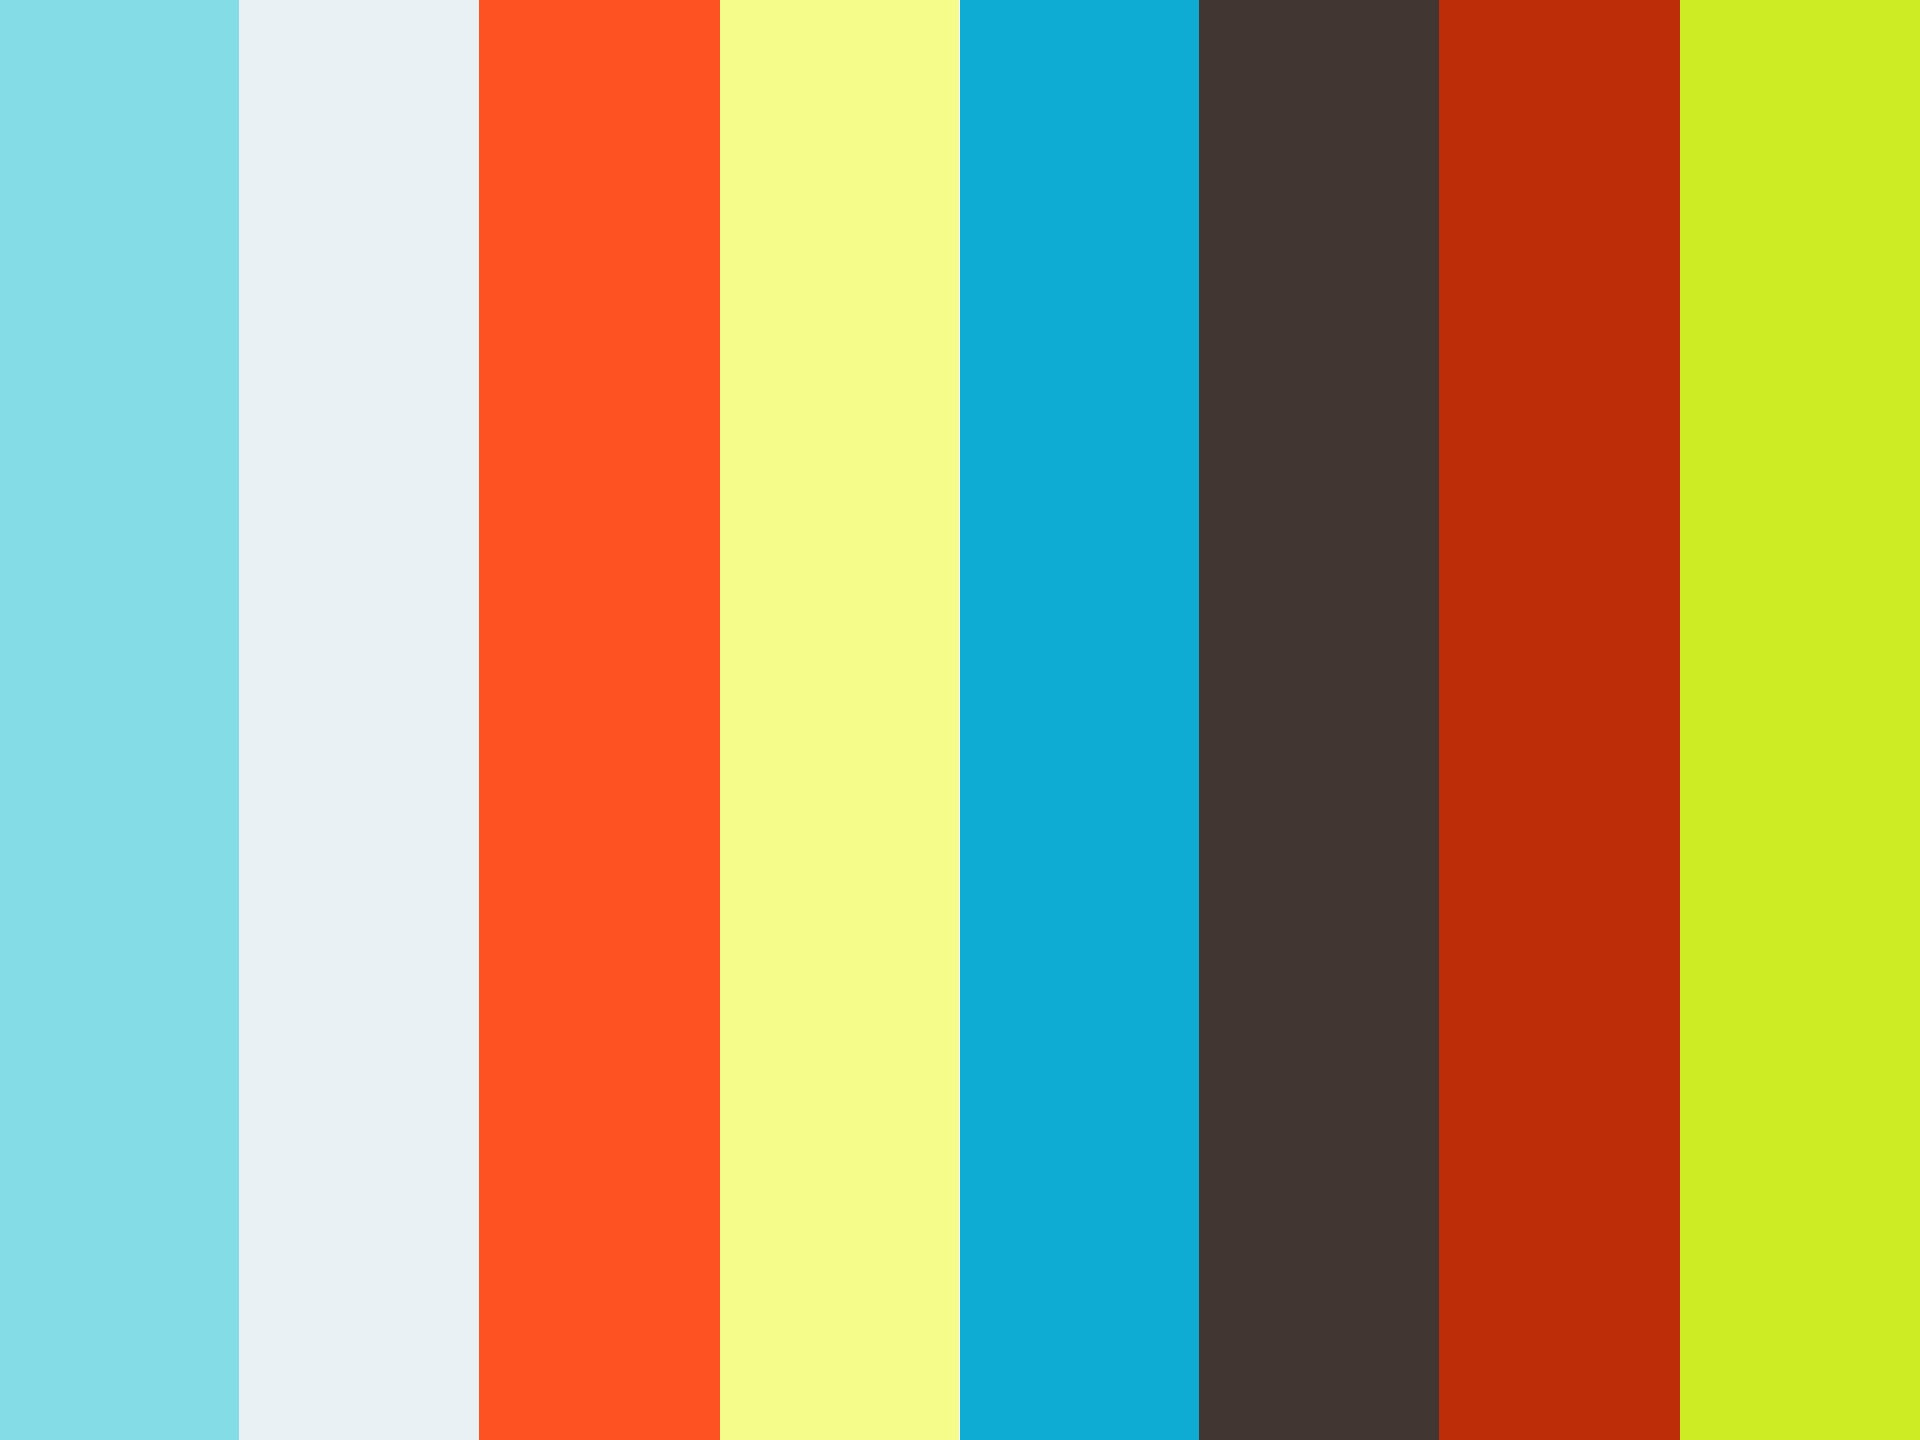 Is Nonsteroidal Anti-Inflammatory Drug Use Associated with Anastomotic Leak in Colorectal Surgery? 2016